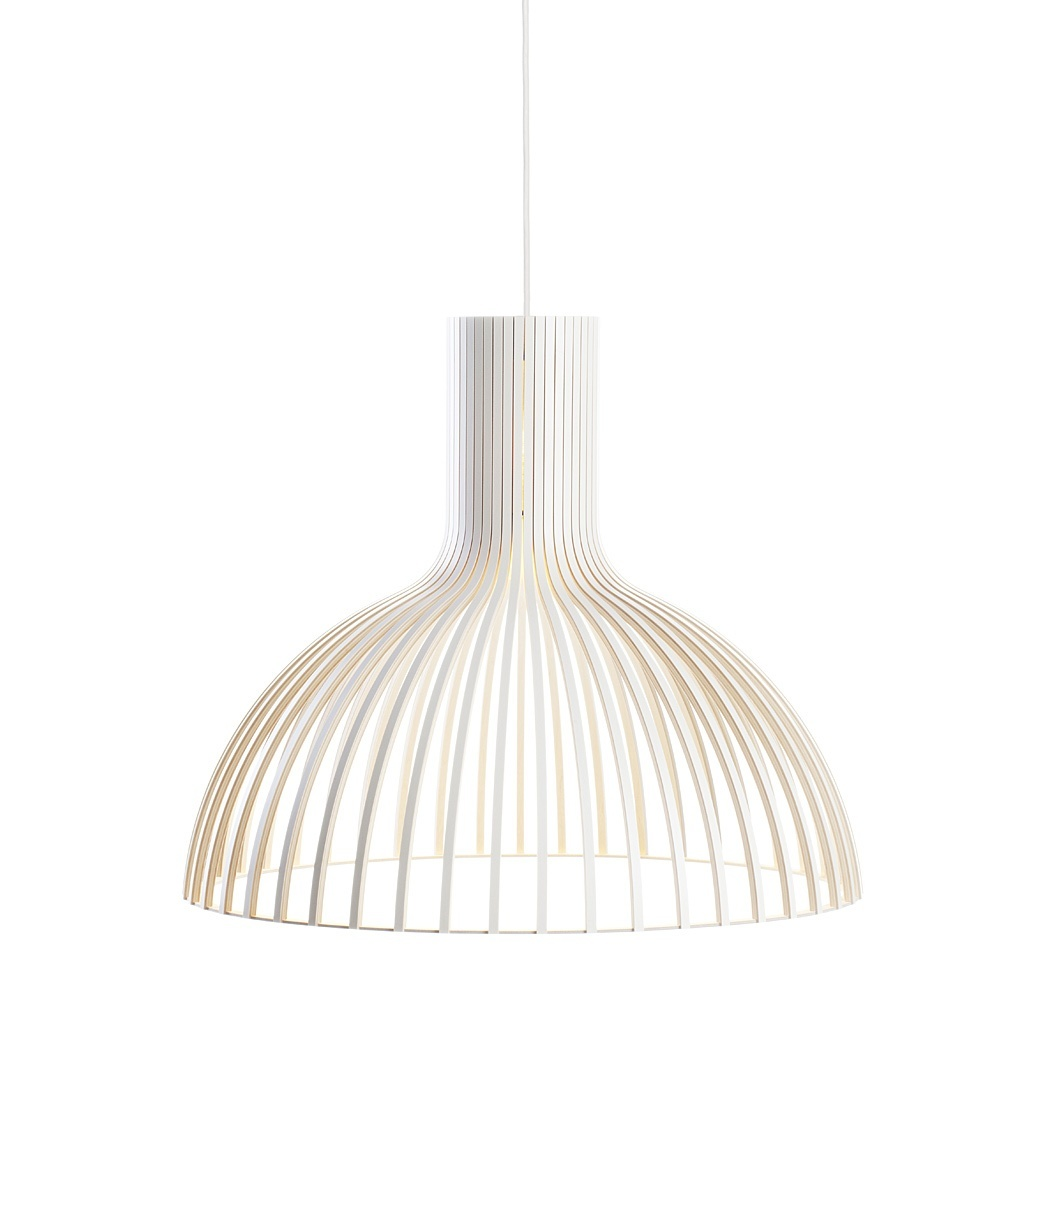 Secto Design Victo 4250 hanglamp-Wit